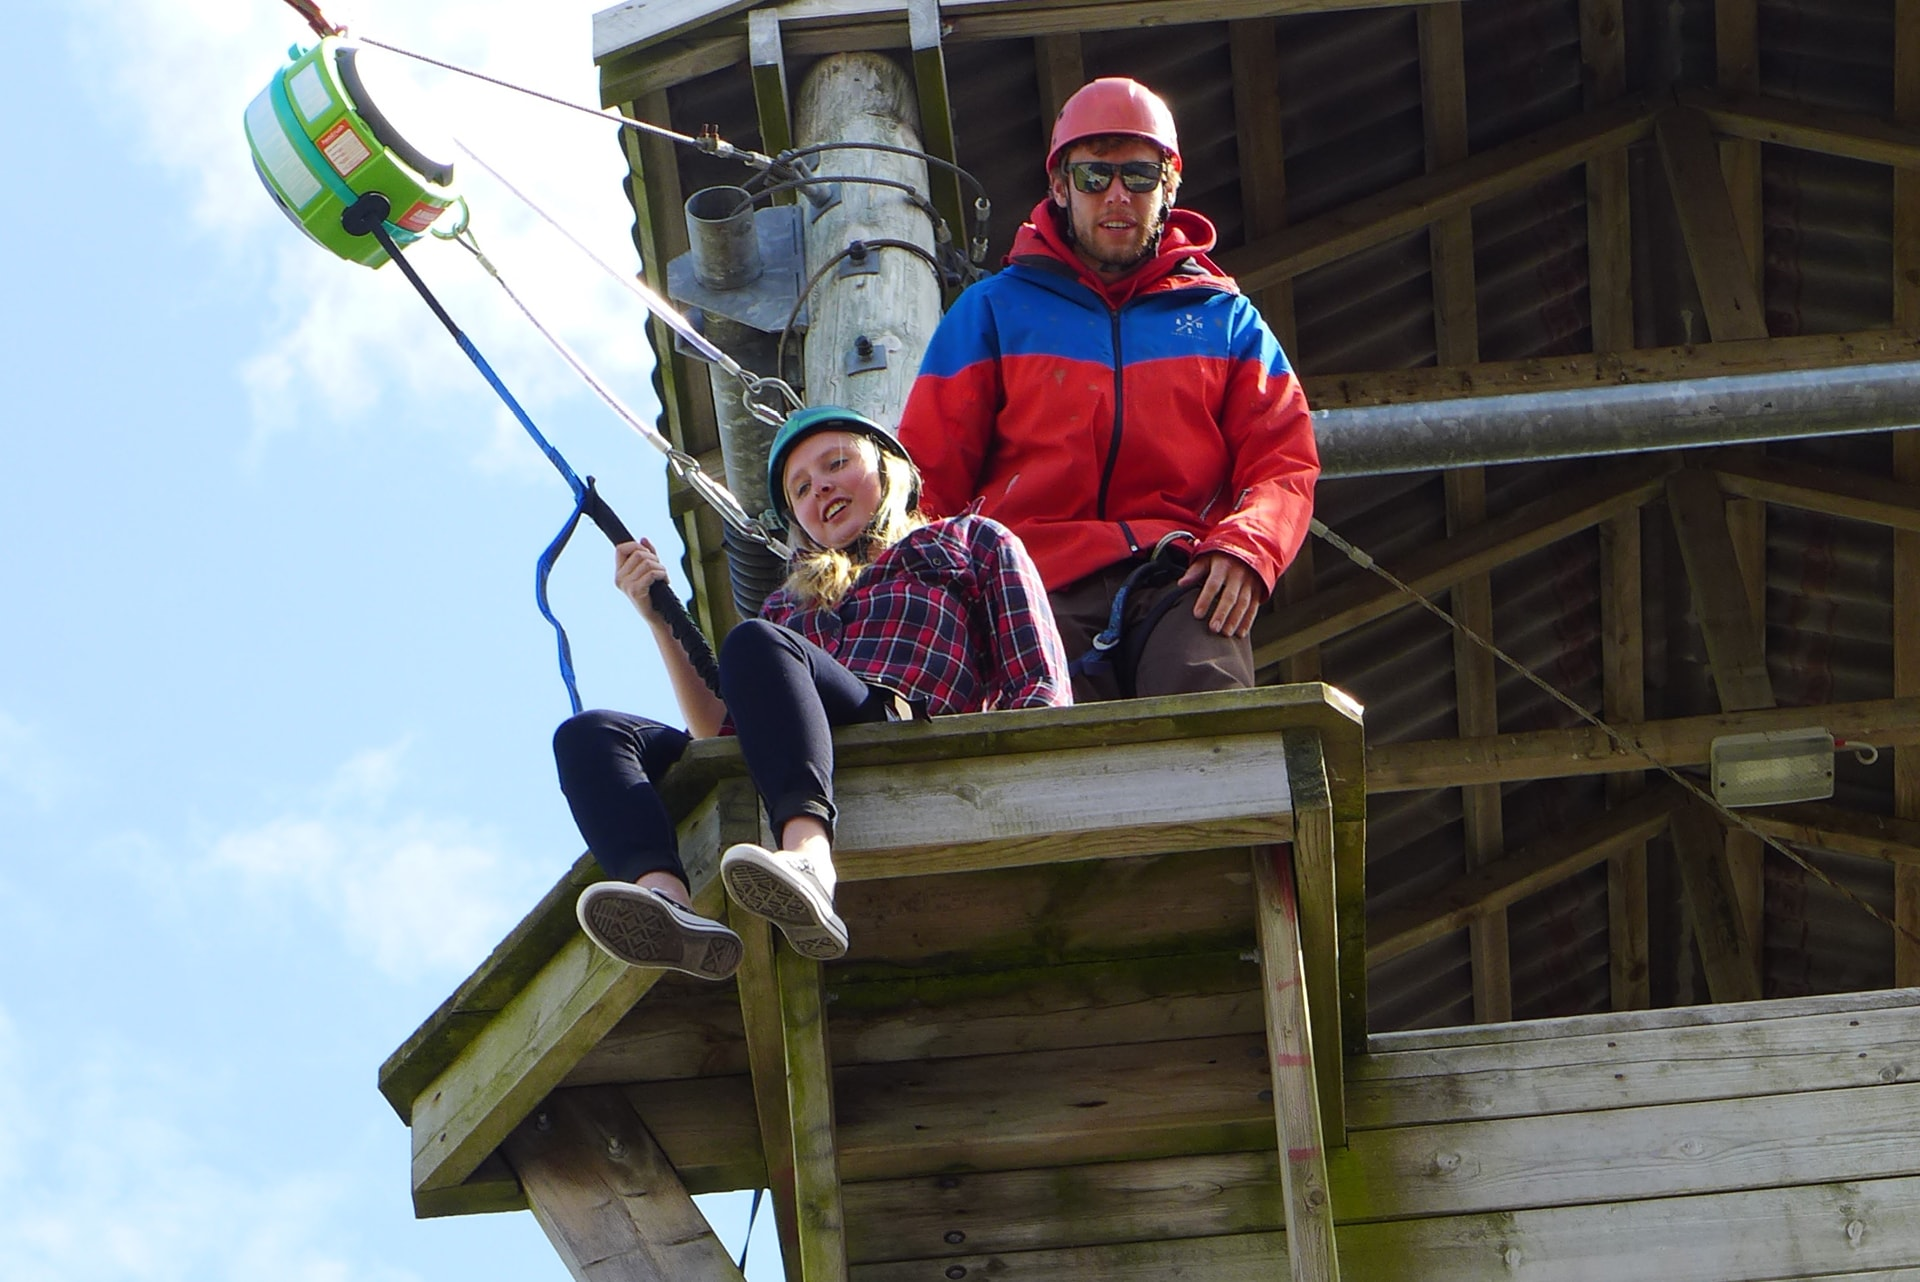 Student zip lining on study abroad trip